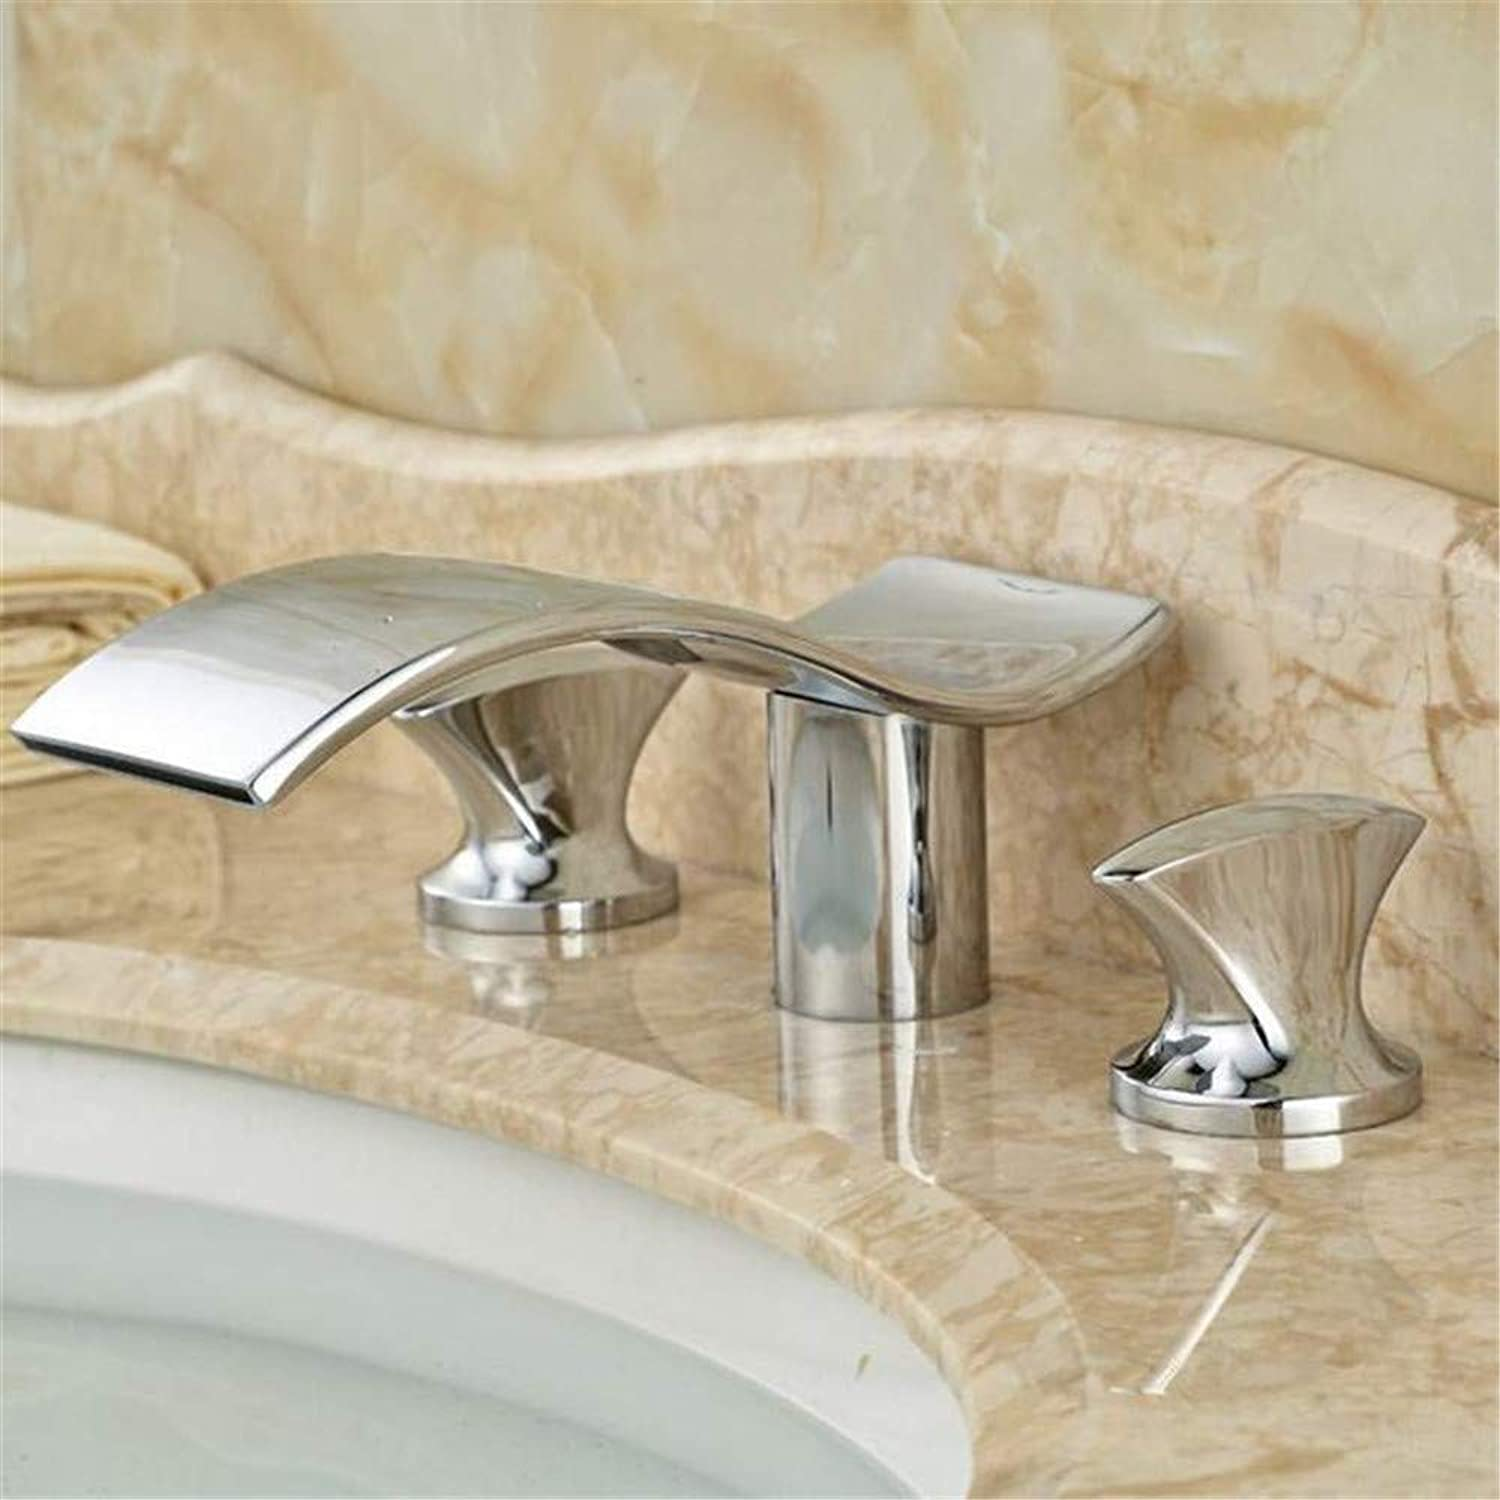 Faucetbasin Faucet Bathroom Sink Tap Dual Handle Luxury Bathroom Sink Faucet Chrome Finish Waterfall Basin Mixer Tap